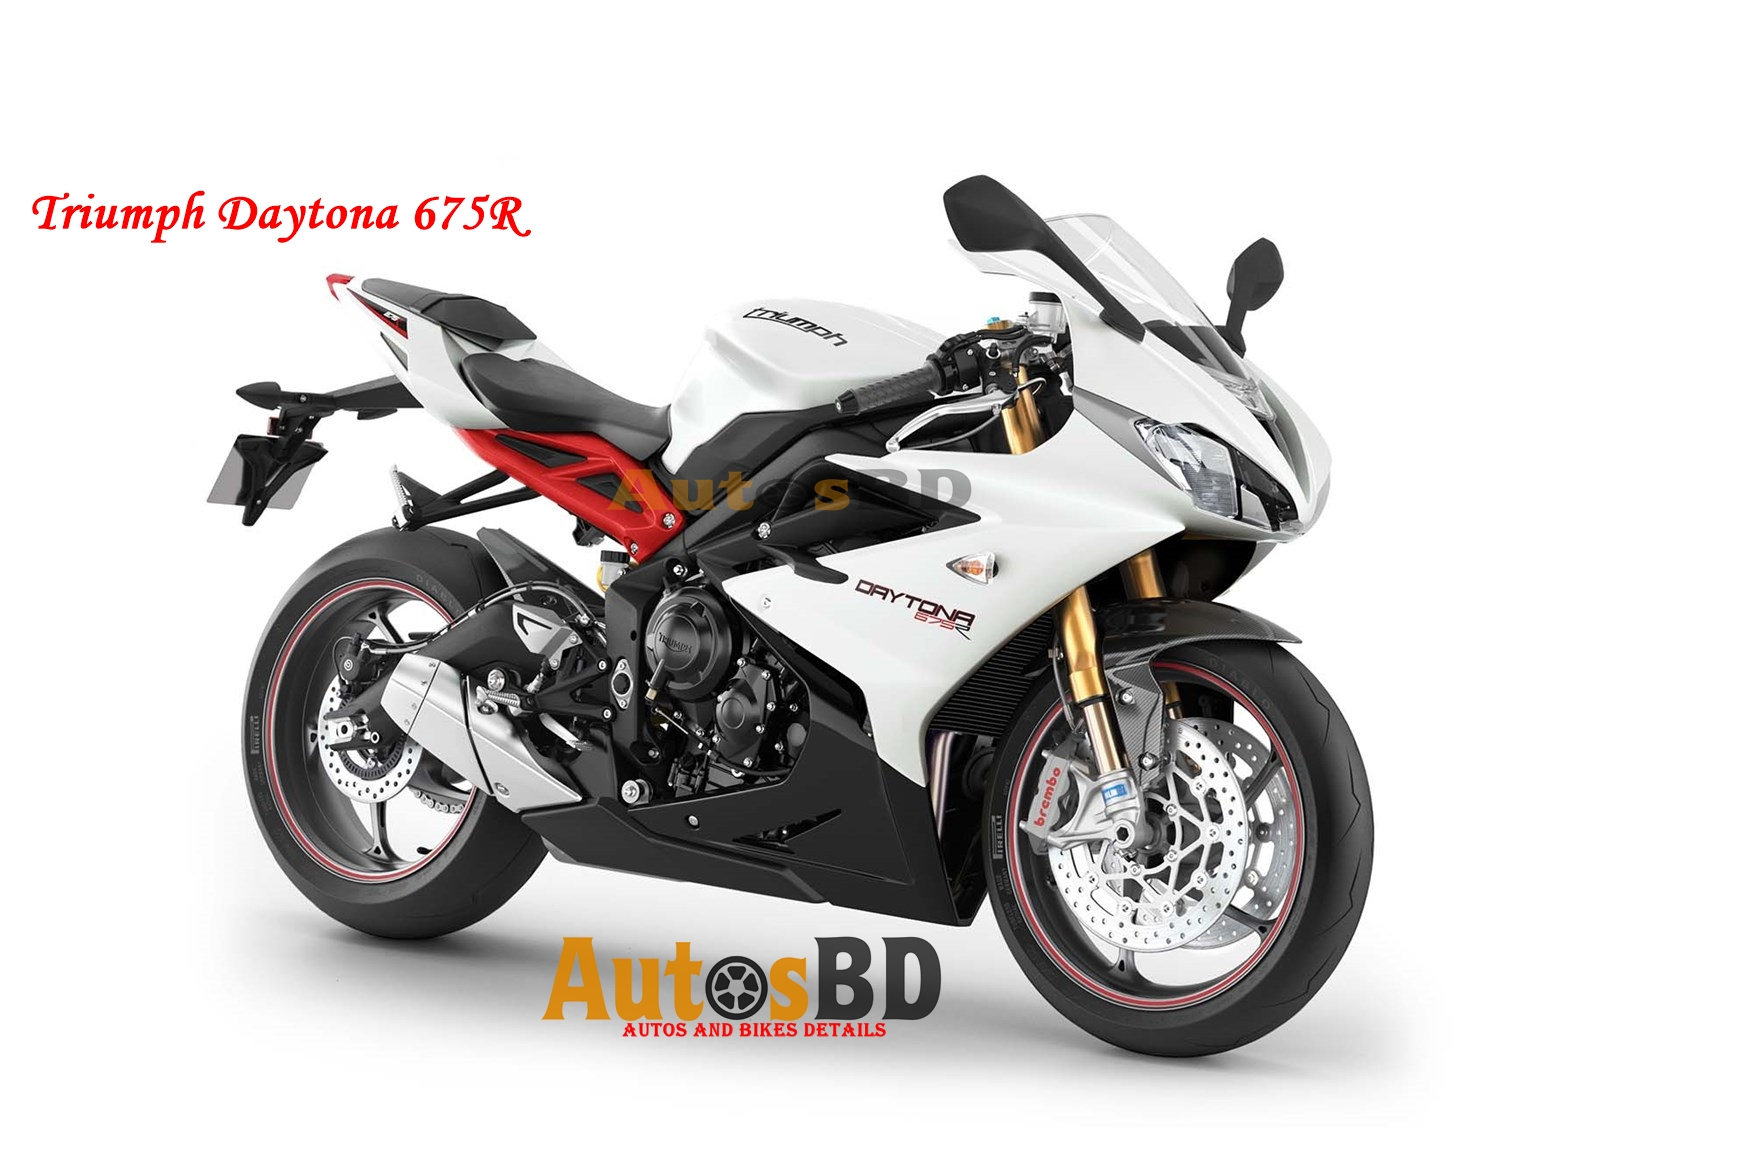 Triumph Daytona 675R Specification